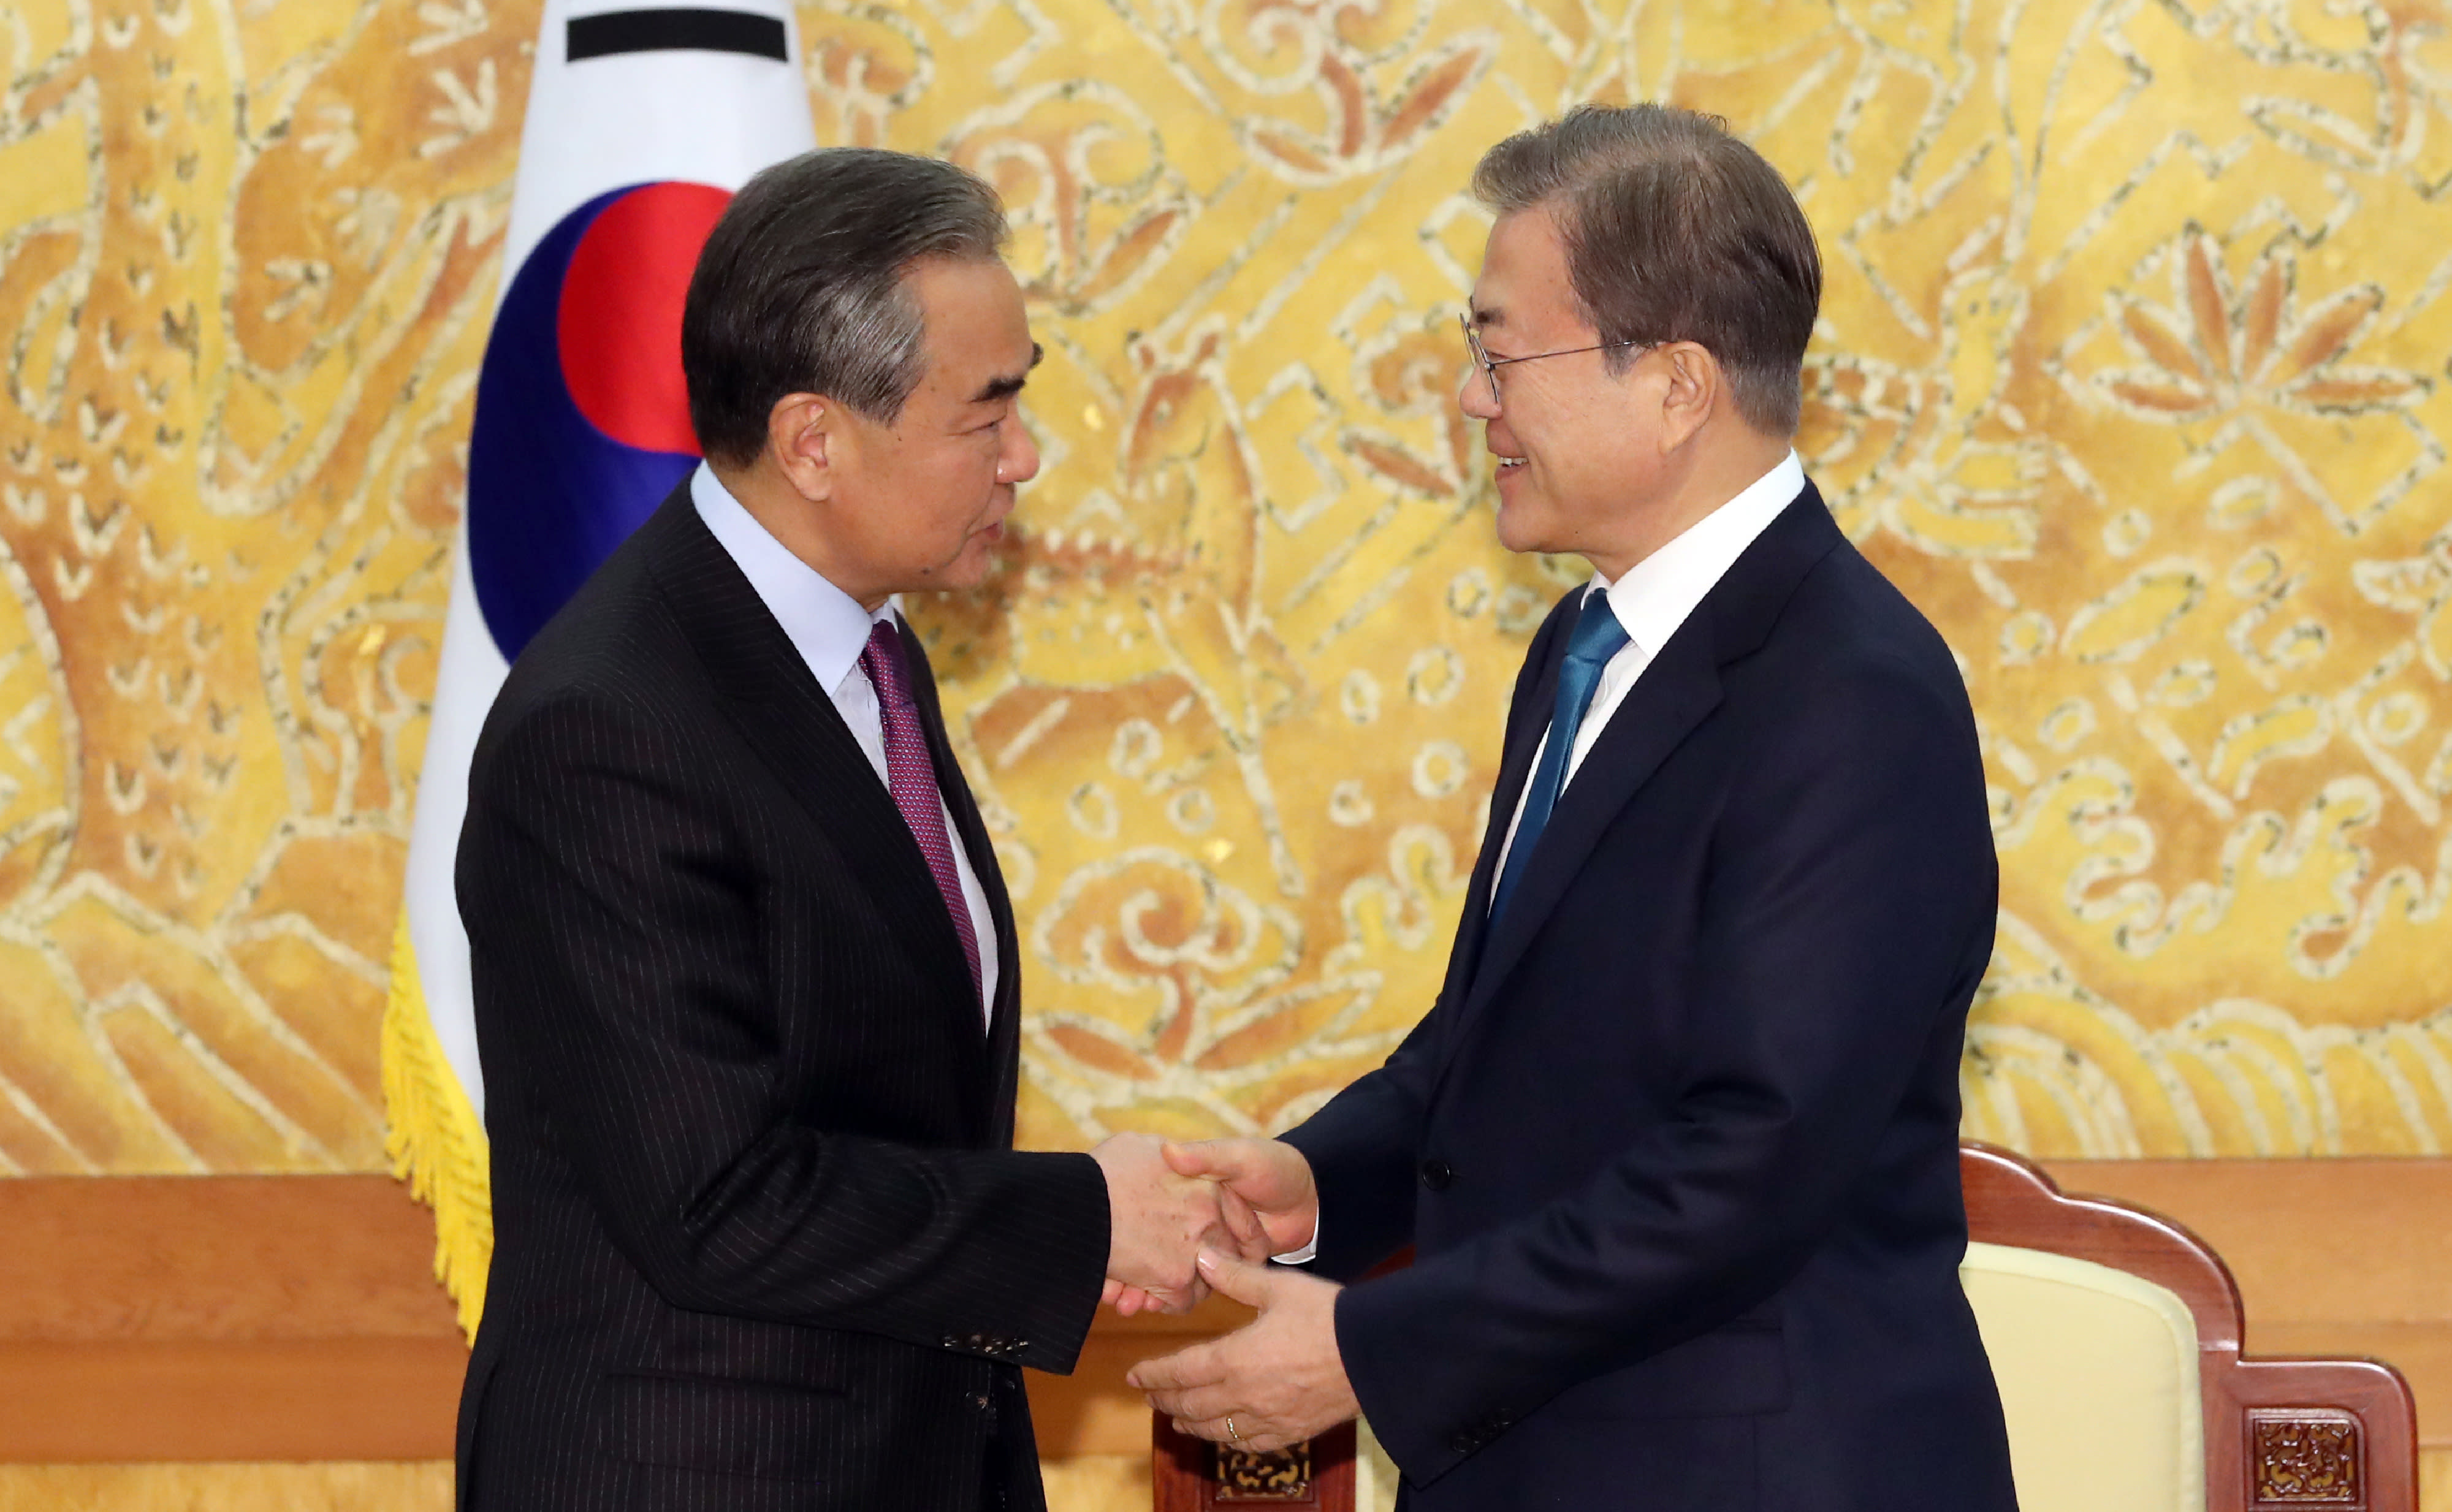 South Korean President Moon Jae-in, right, greets Chinese Foreign Minister Wang Yi during a meeting at the presidential Blue House in Seoul, South Korea, Thursday, Dec. 5, 2019. Wang arrived in South Korea on Wednesday for his first visit in four years amid efforts to patch up relations damaged by Seoul's decision to host a U.S. anti-missile system that Beijing perceives as a security threat. (Lee Jin-wook/Yonhap via AP)